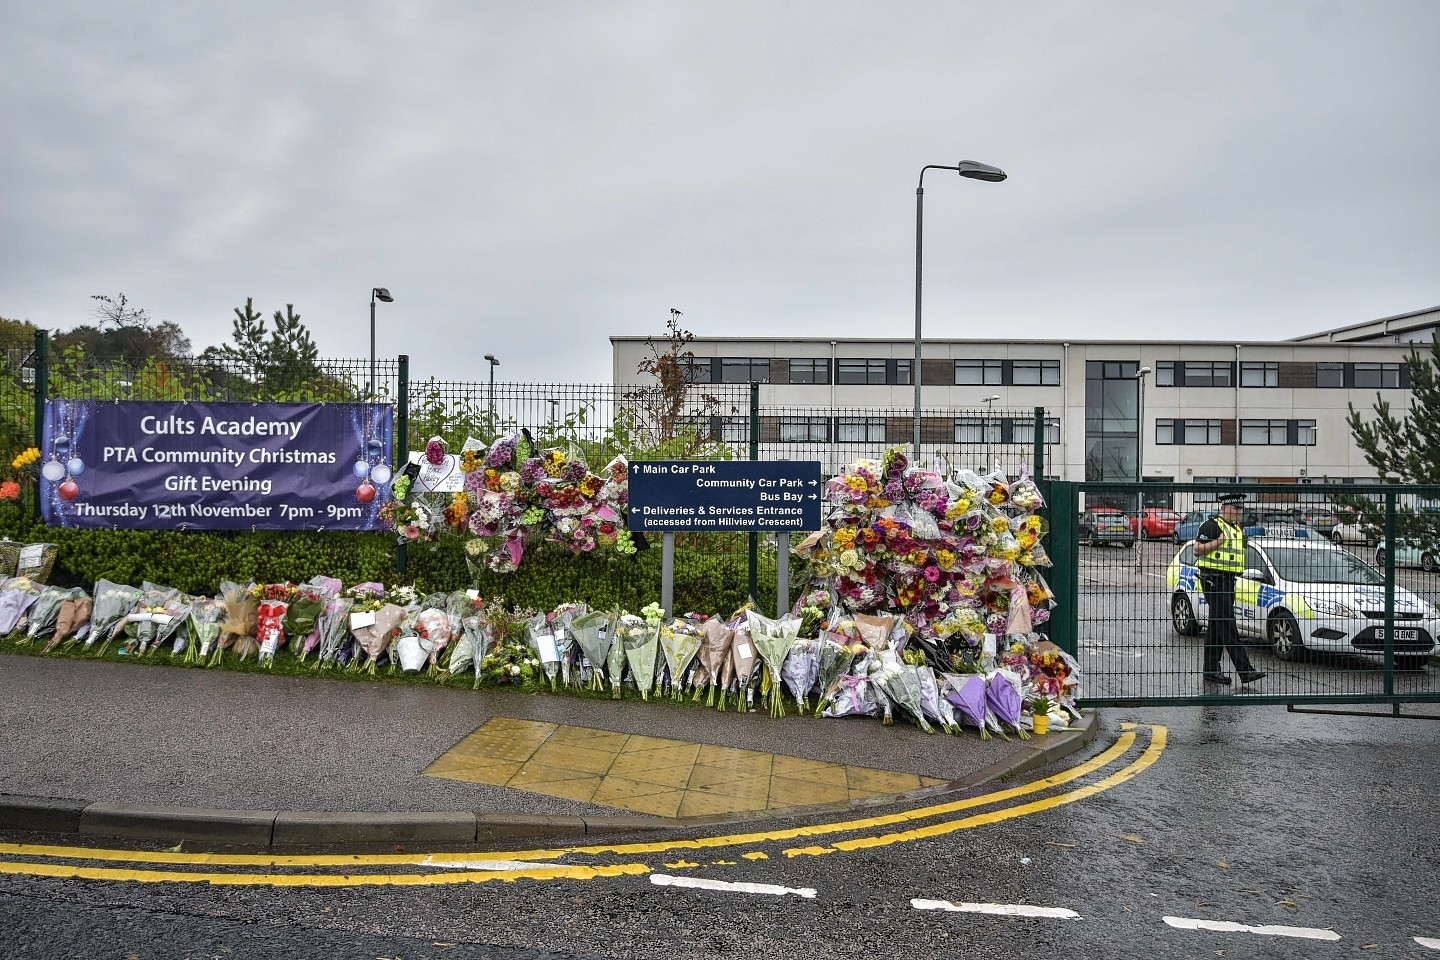 The number of floral tributes continues to grow